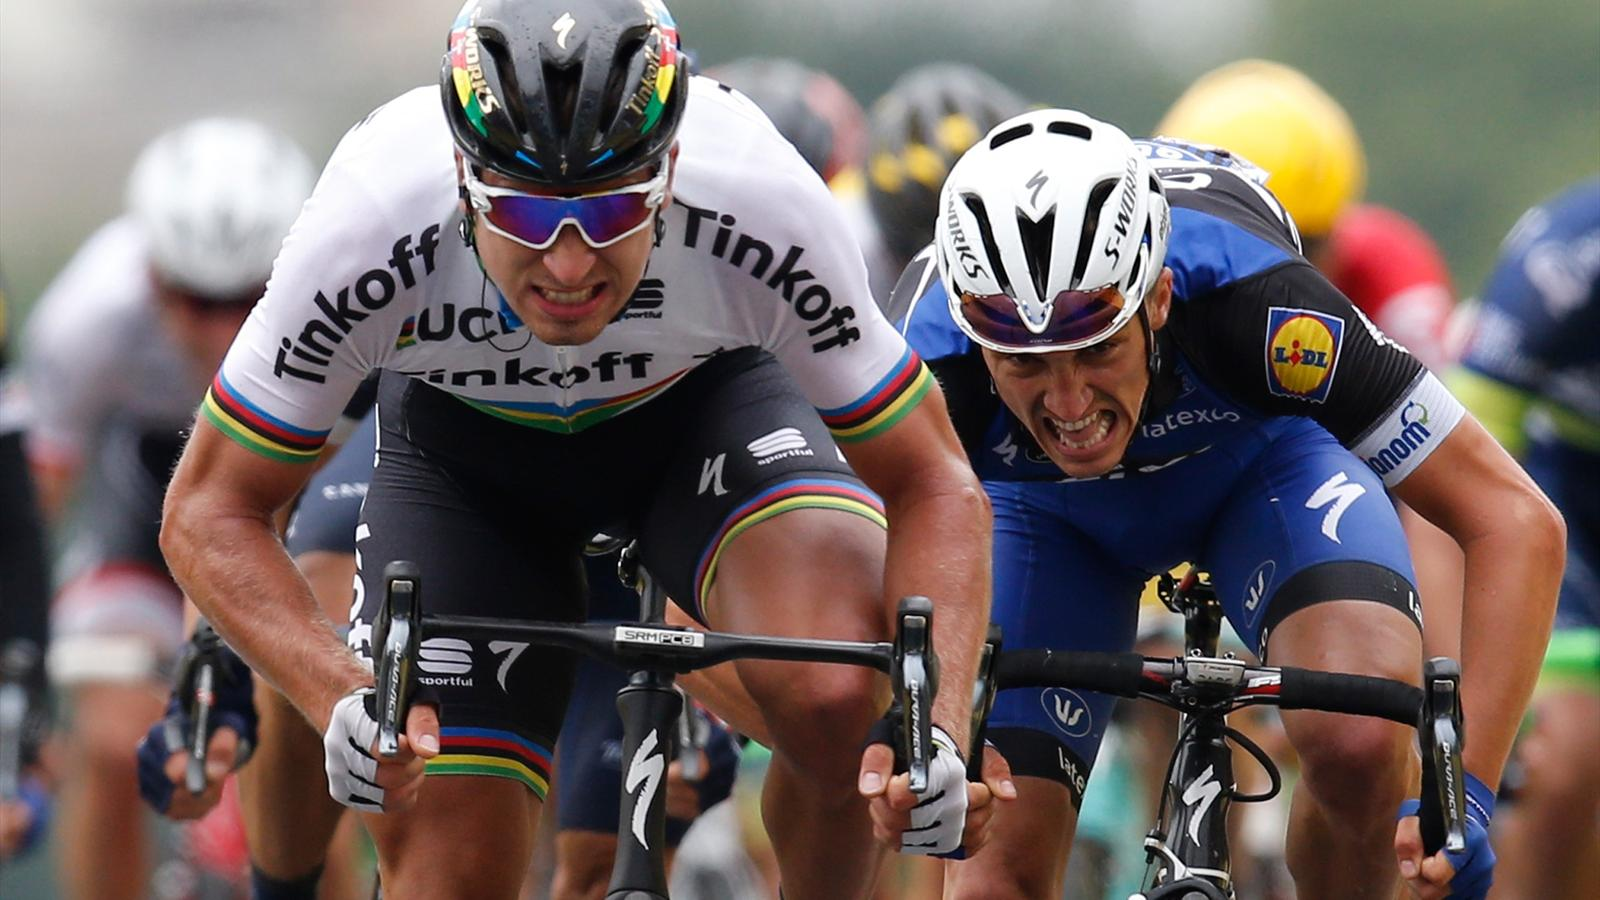 Peter Sagan ends winless run to move into yellow